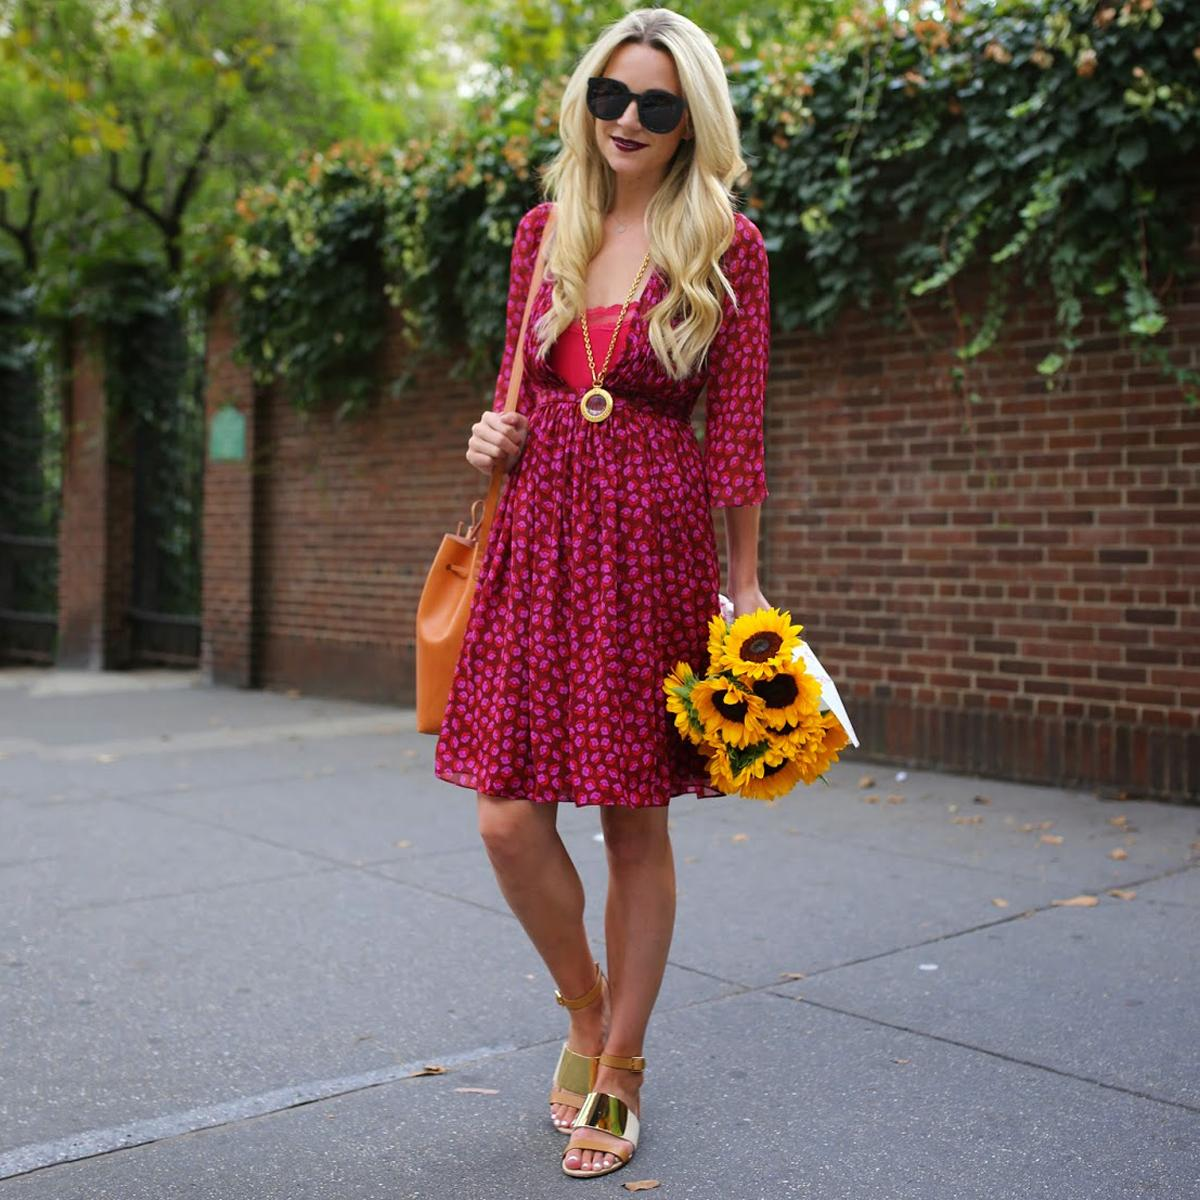 .@BlairEadieBEE wearing our runway standout, the Alicia Dress! Shop her look: http://t.co/2AcrlTBPJN http://t.co/CC5aKNPwSm